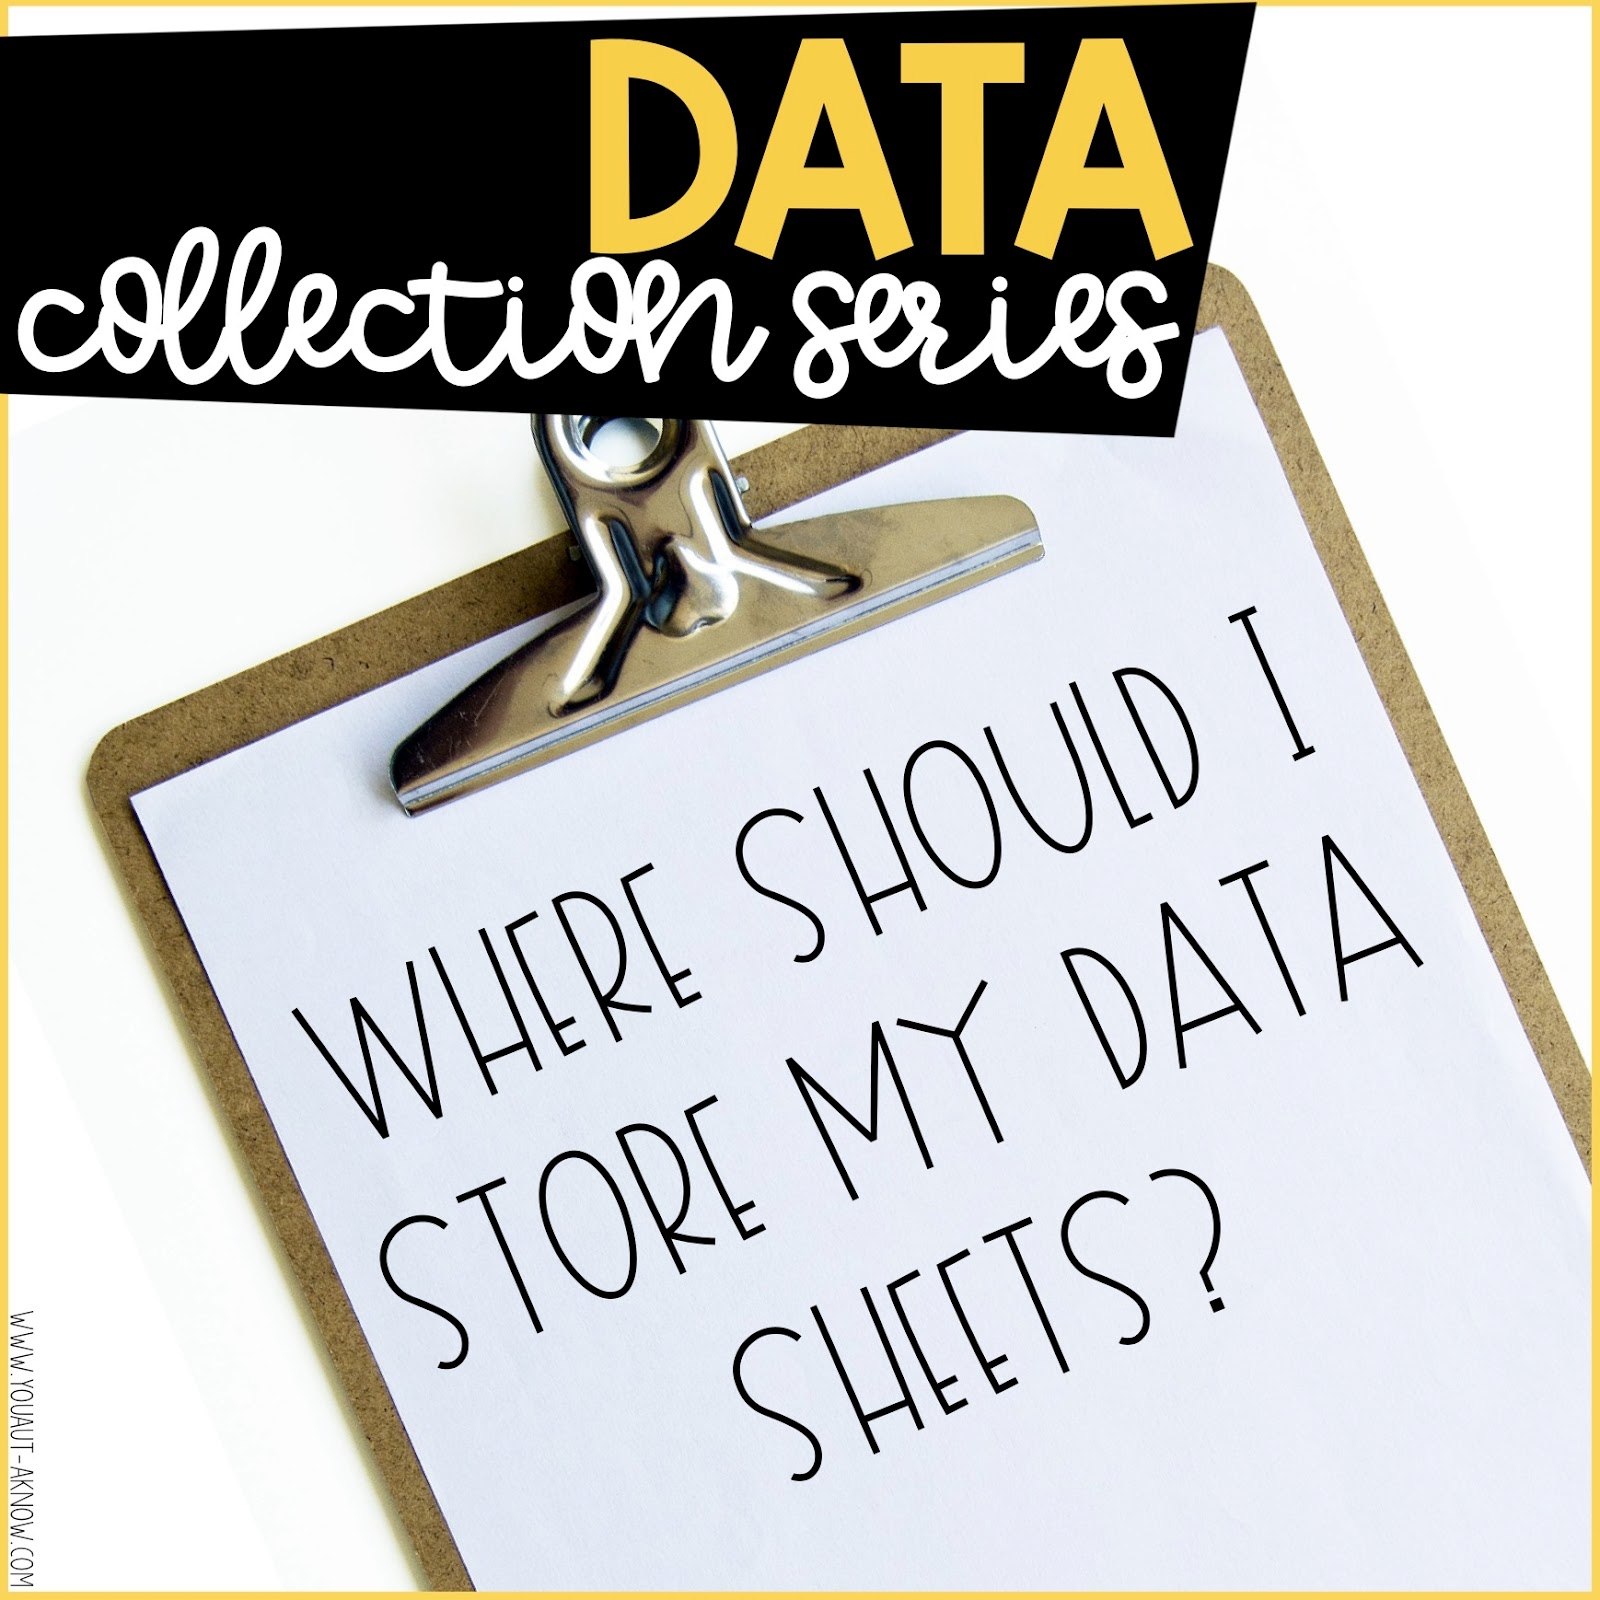 Are you wondering where you should store your data sheets to ensure data is being collected frequently in your special education classroom? Find out where I store data sheets and get maximum data collection from all of my staff.